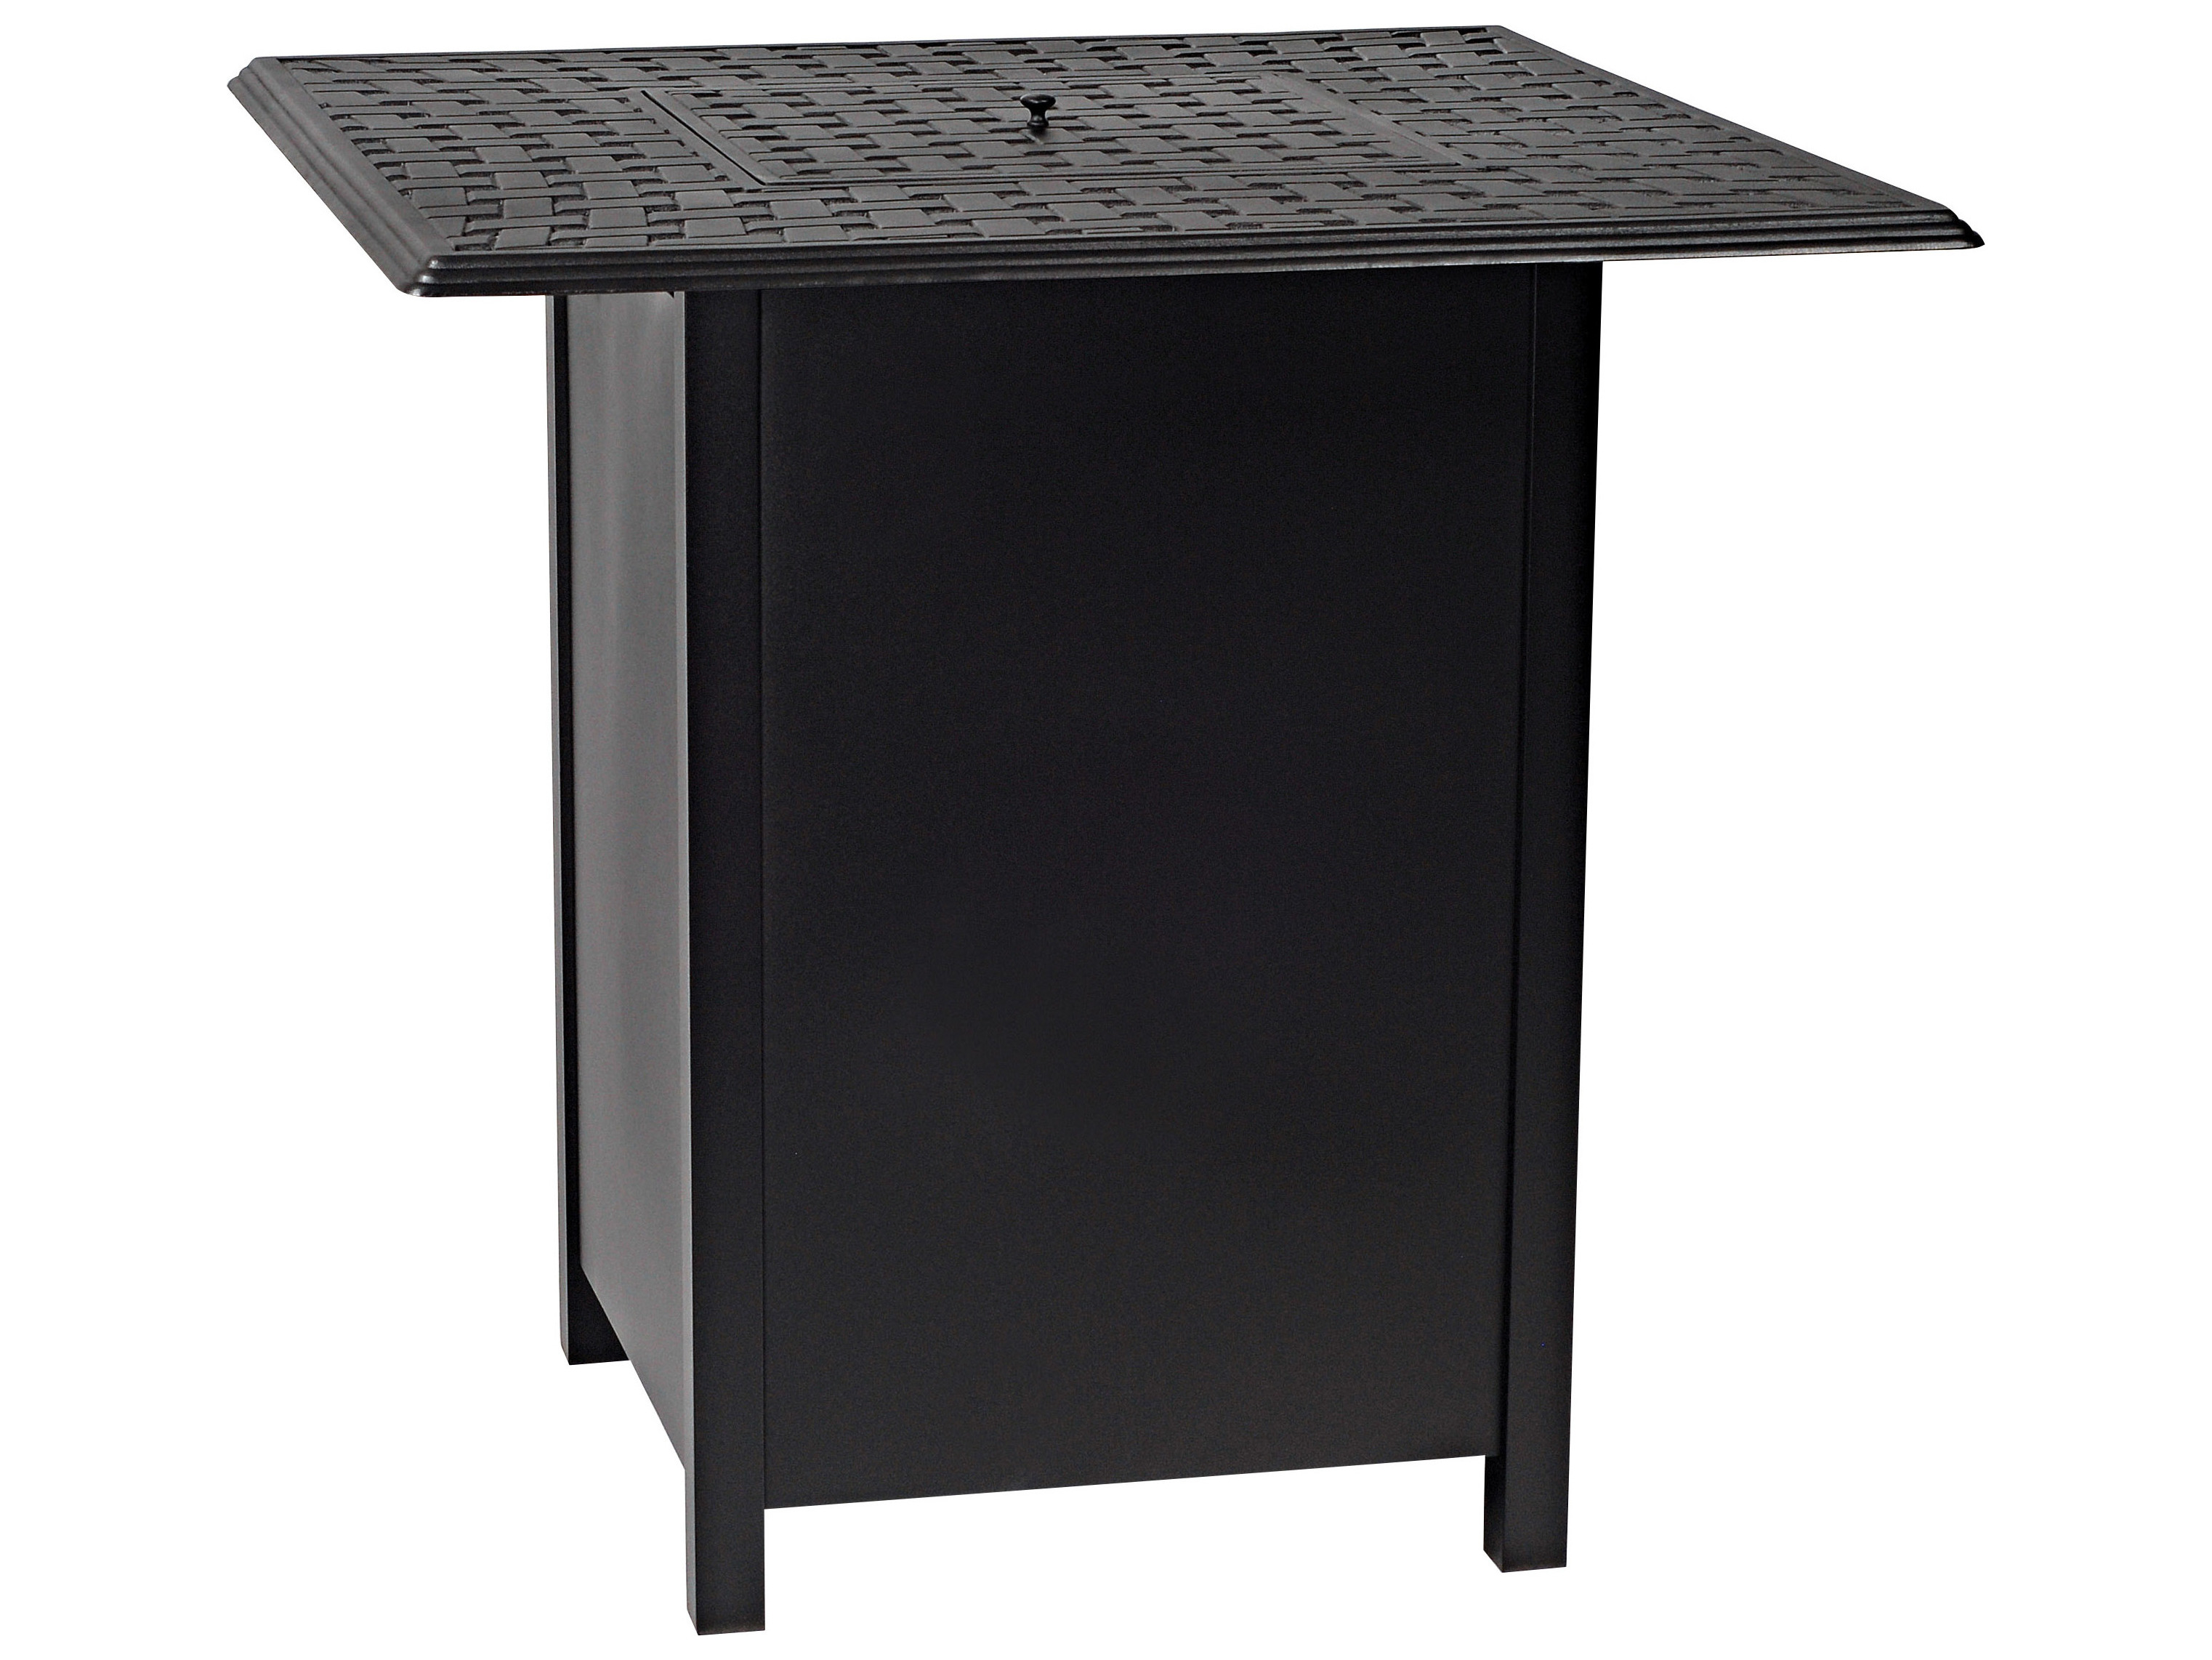 woodard aluminum square bar height fire table base with square burner 1cm3sqsb. Black Bedroom Furniture Sets. Home Design Ideas